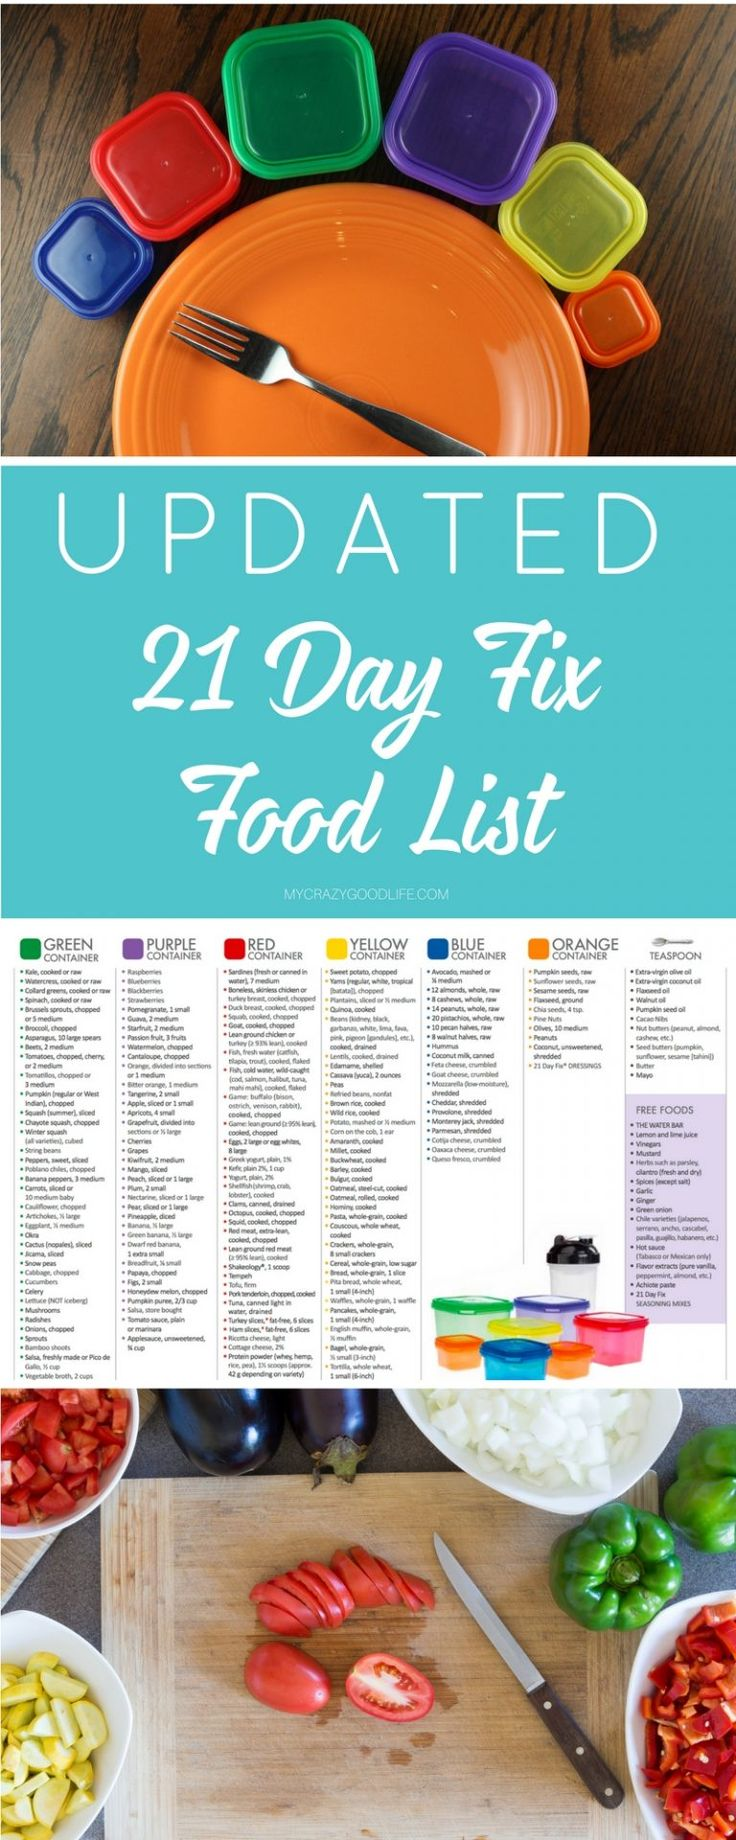 This expanded and updated 21 Day Fix food list is meant to help guide you through the 21 Day Fix program. There are updates being made all the time, so I'll pass them on to you when they happen!